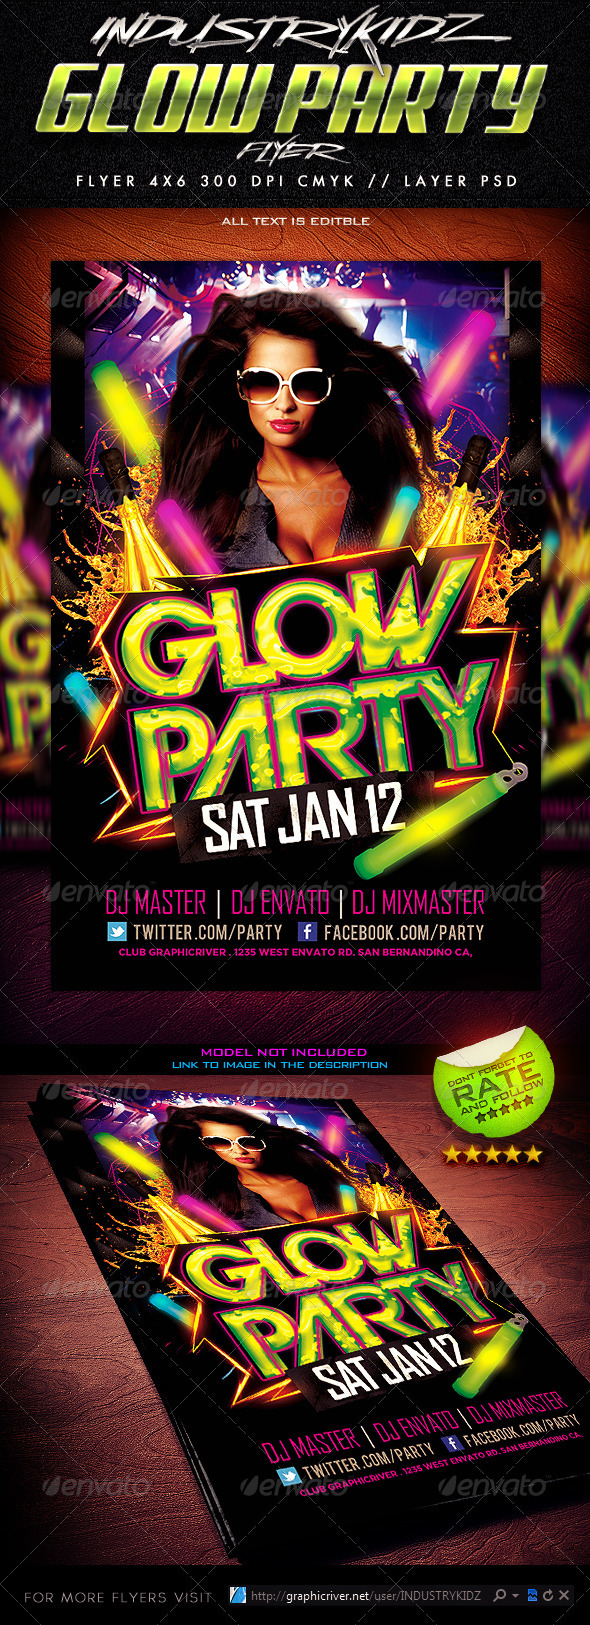 black light party invitation templates akba greenw co